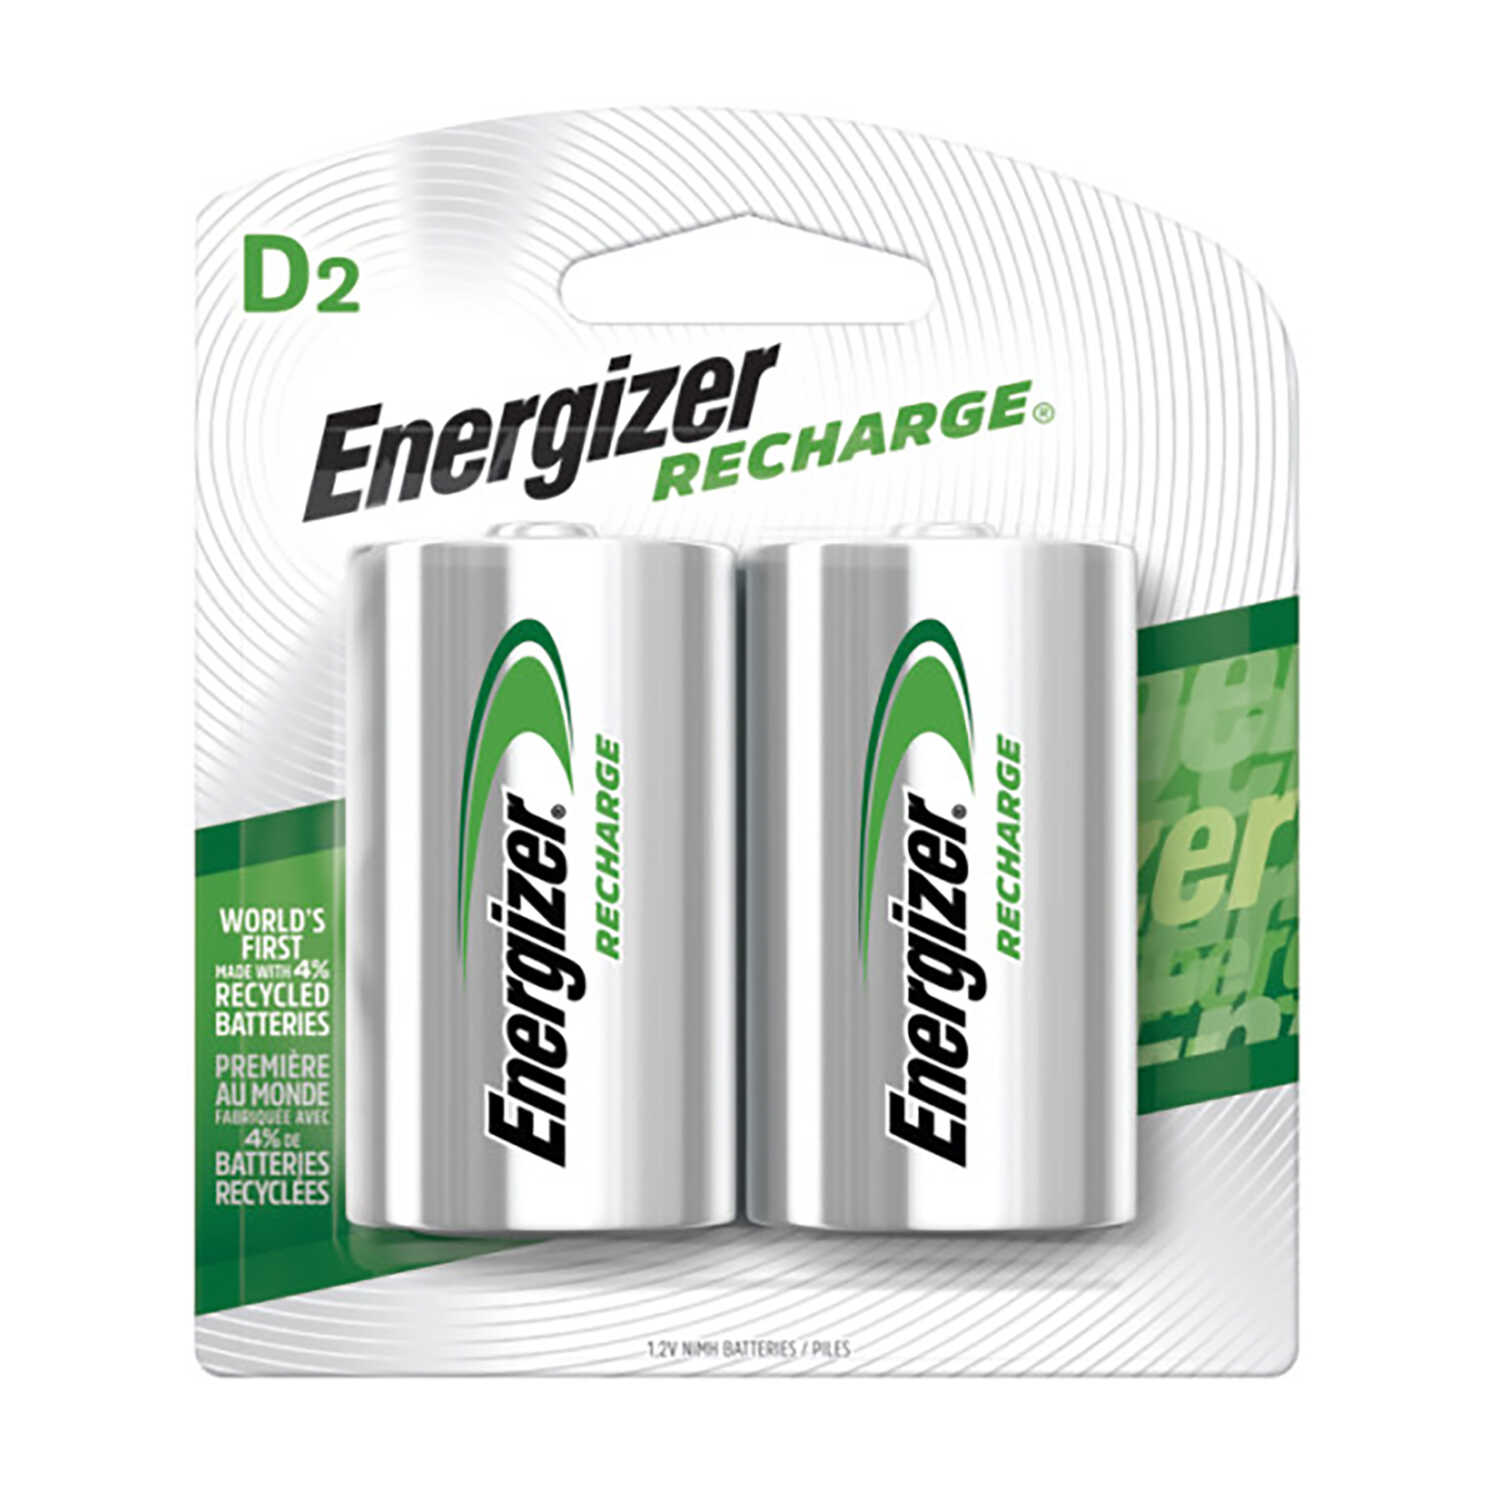 Energizer  NiMH  D  1.2 volt Rechargeable Batteries  NH50BP-2R2  2 pk